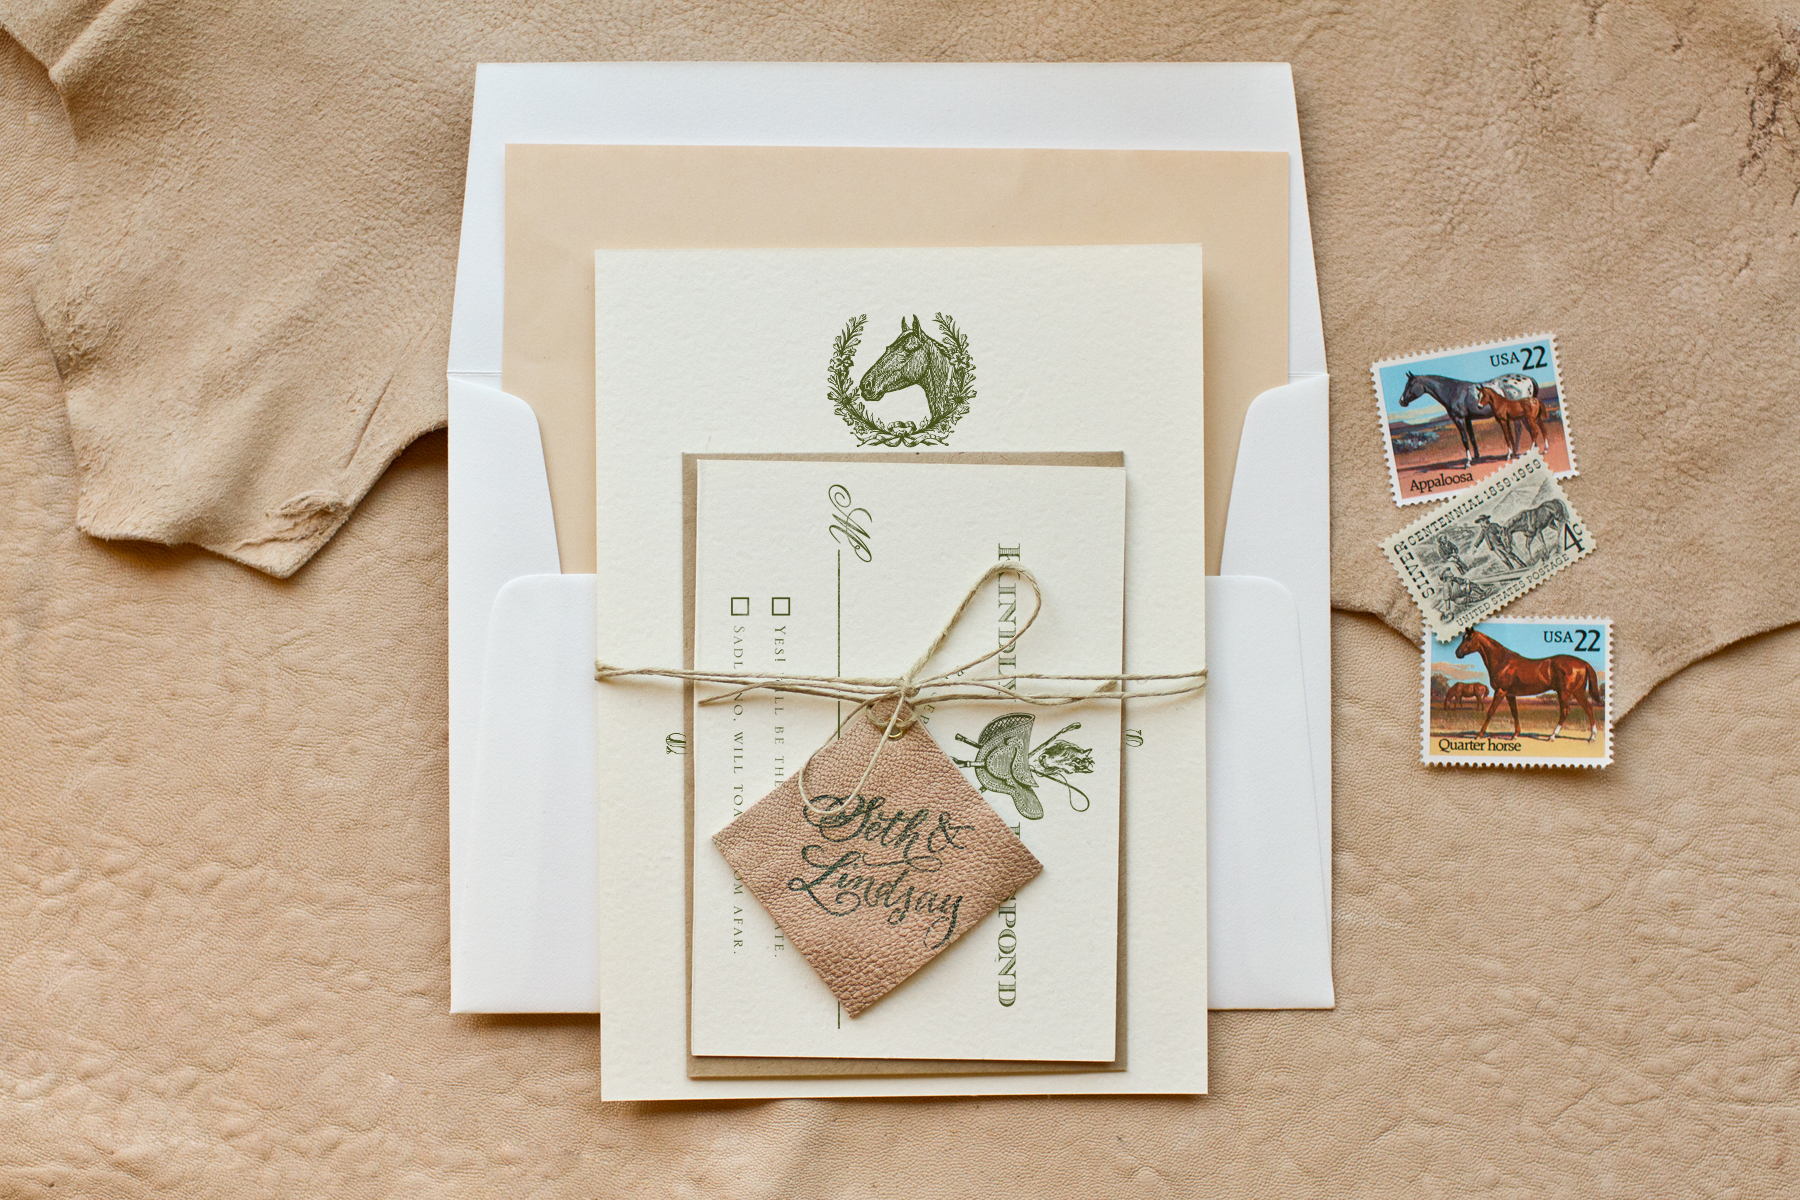 diy stamped equestrian invitations with monogrammed leather tags making wedding invitations